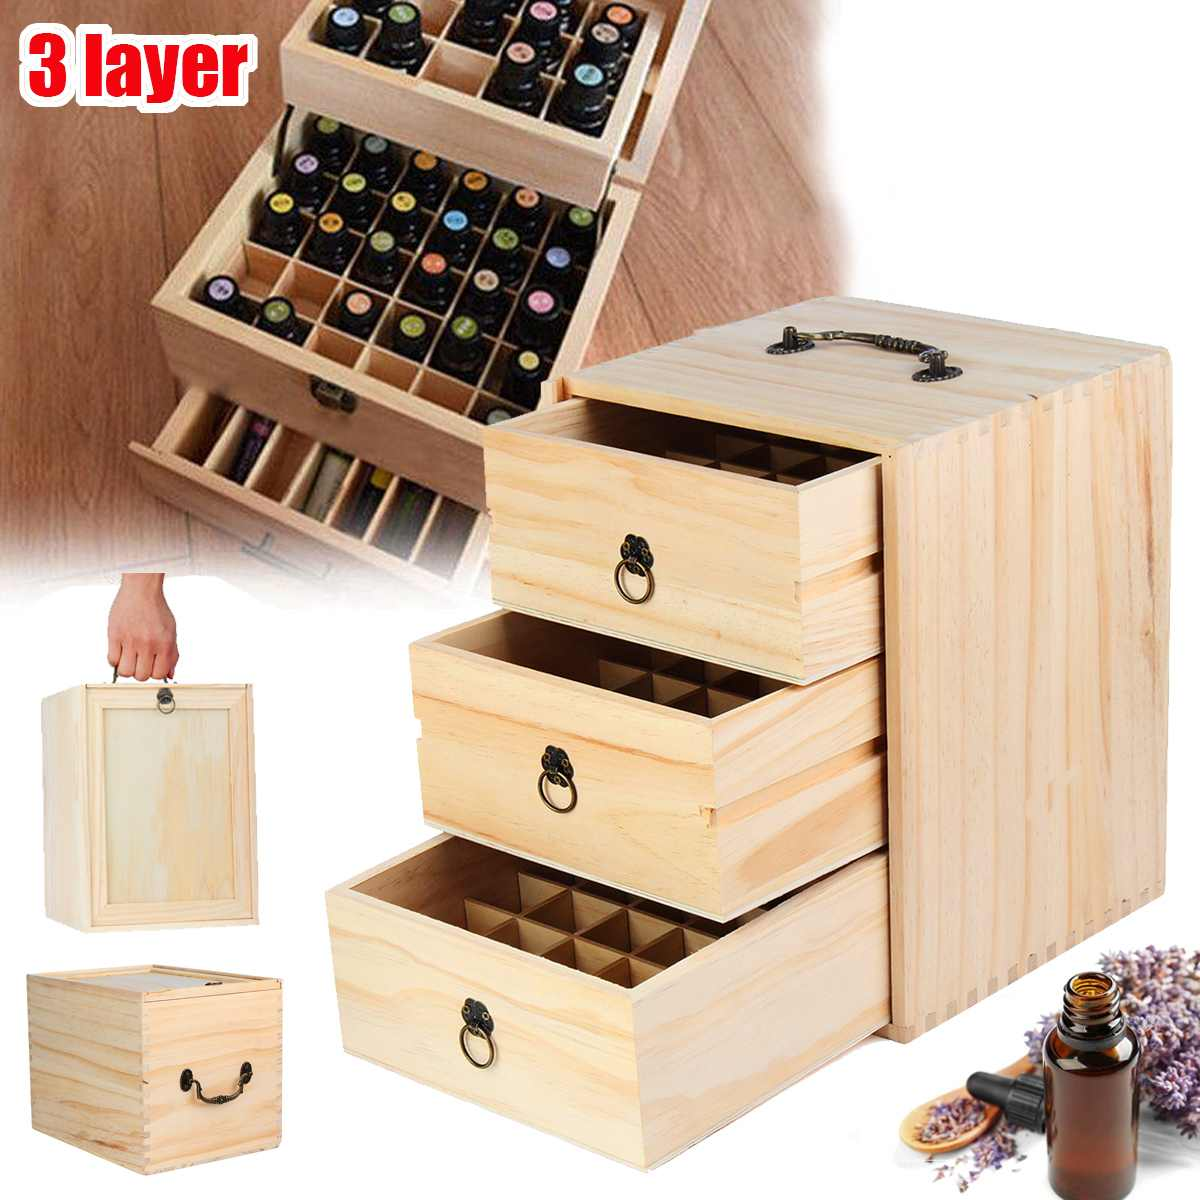 3 Tiers 75 Slots Essential Oil Wooden Box Carry Organizer Wood Storage Case With Handle Saver Large Aromatherapy Oil Storage Box3 Tiers 75 Slots Essential Oil Wooden Box Carry Organizer Wood Storage Case With Handle Saver Large Aromatherapy Oil Storage Box